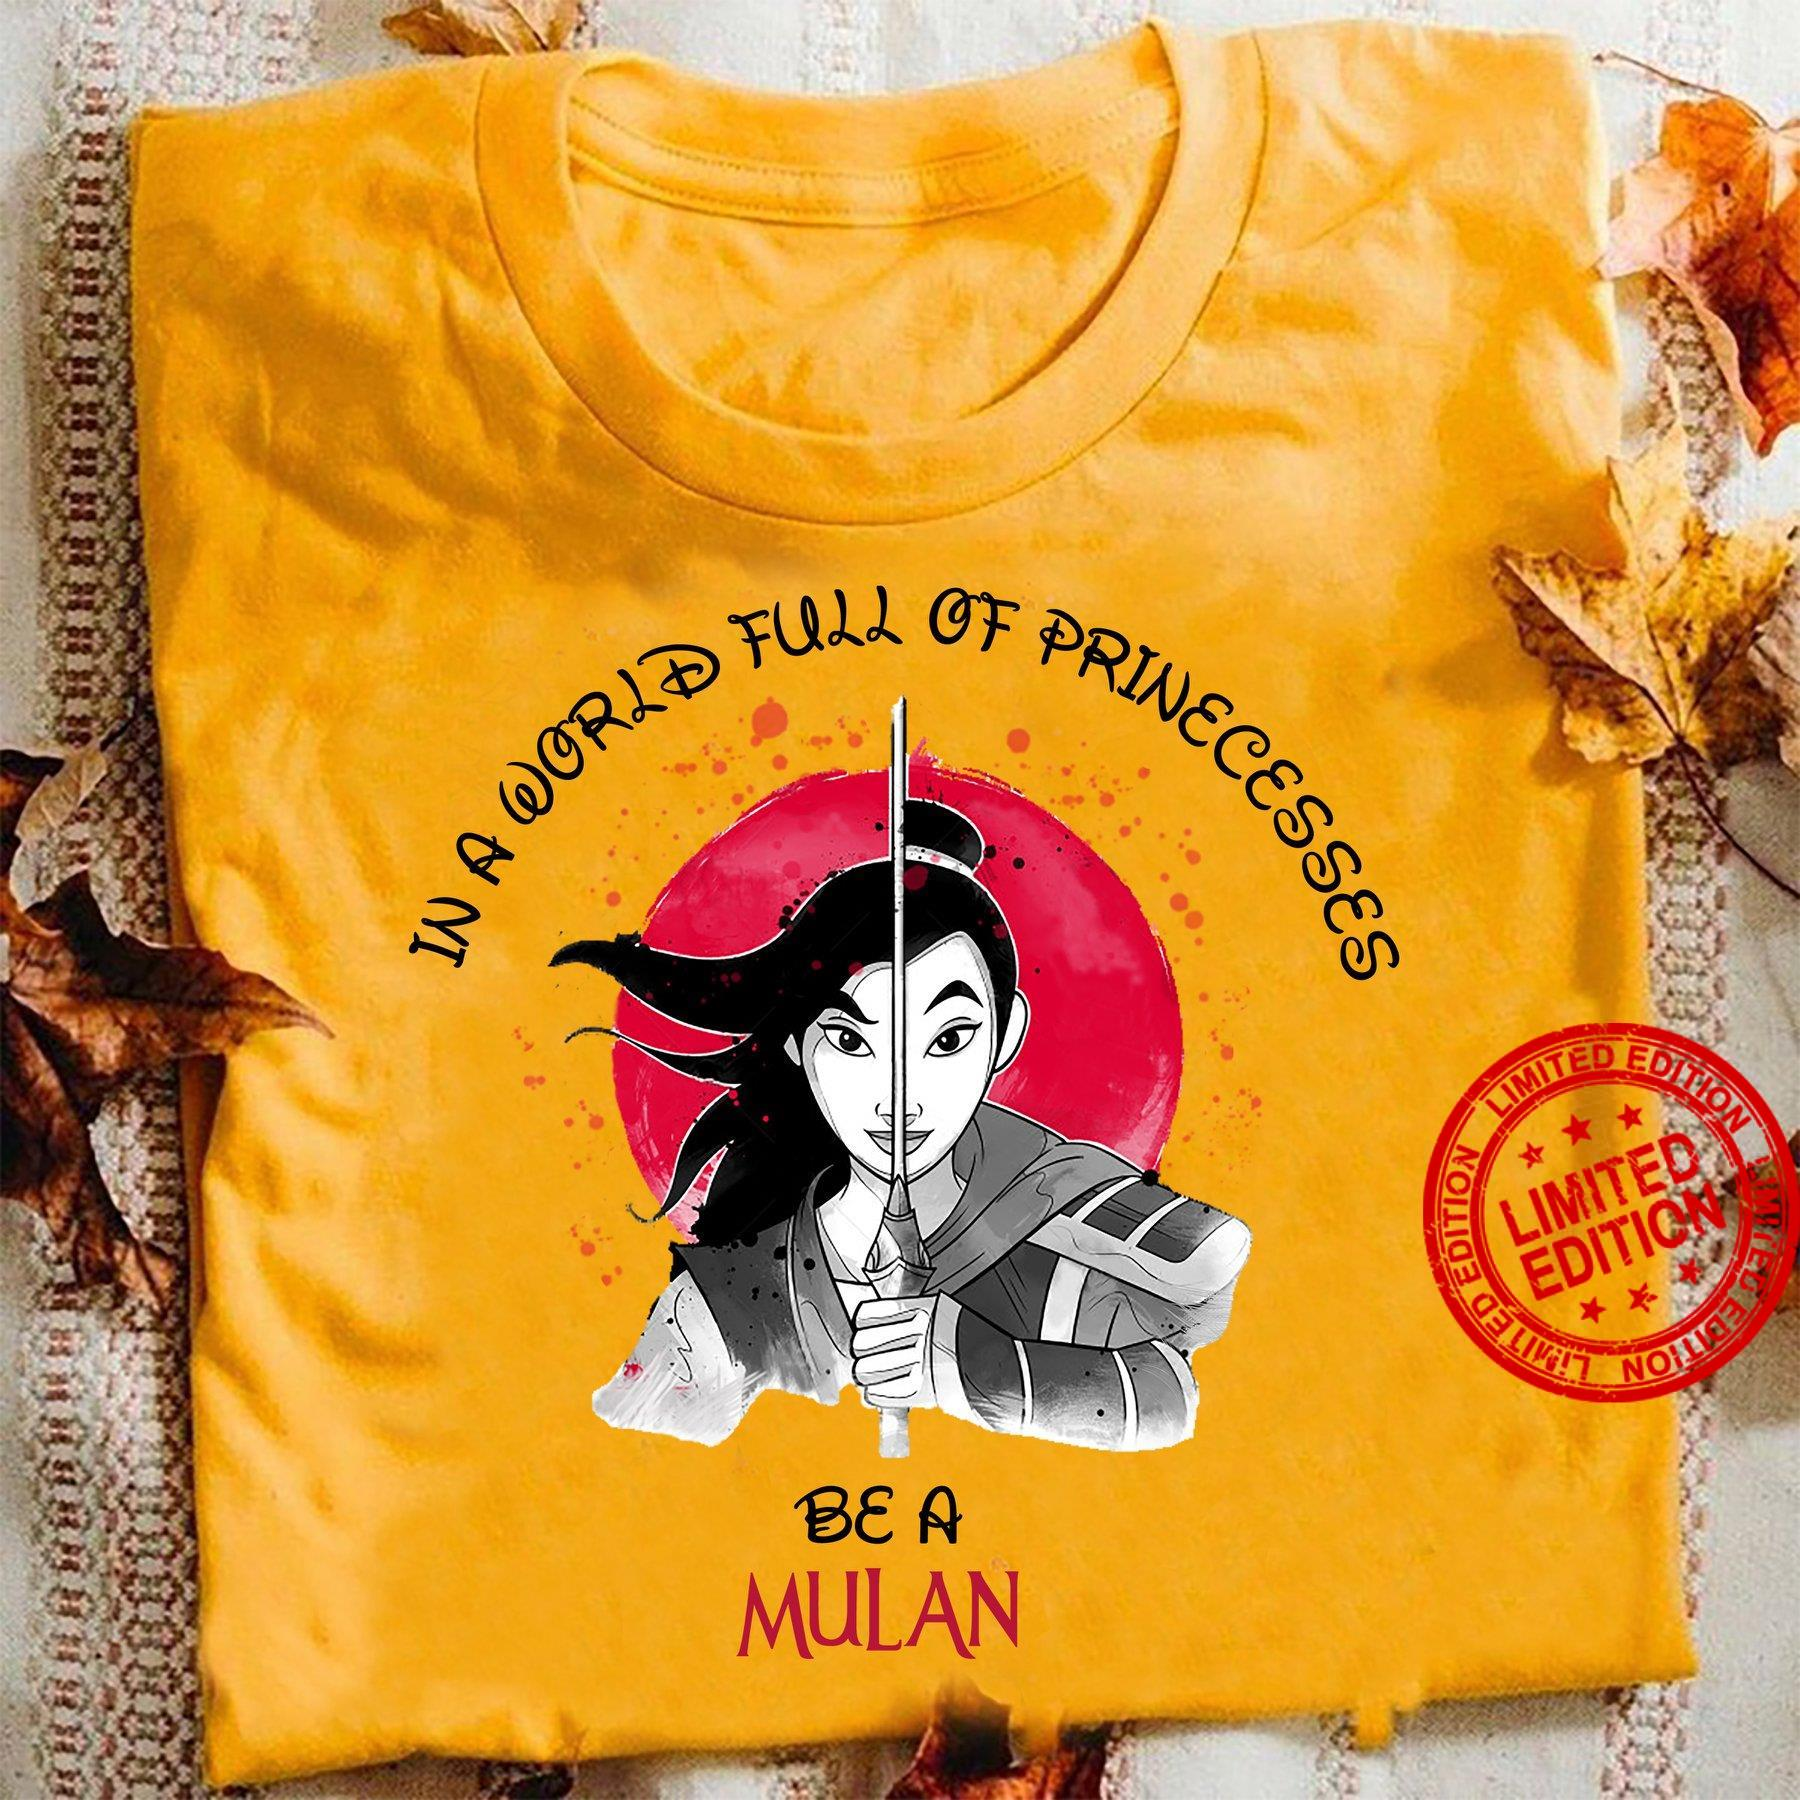 In A World Full Of Prinecesses Be A Mulan Shirt